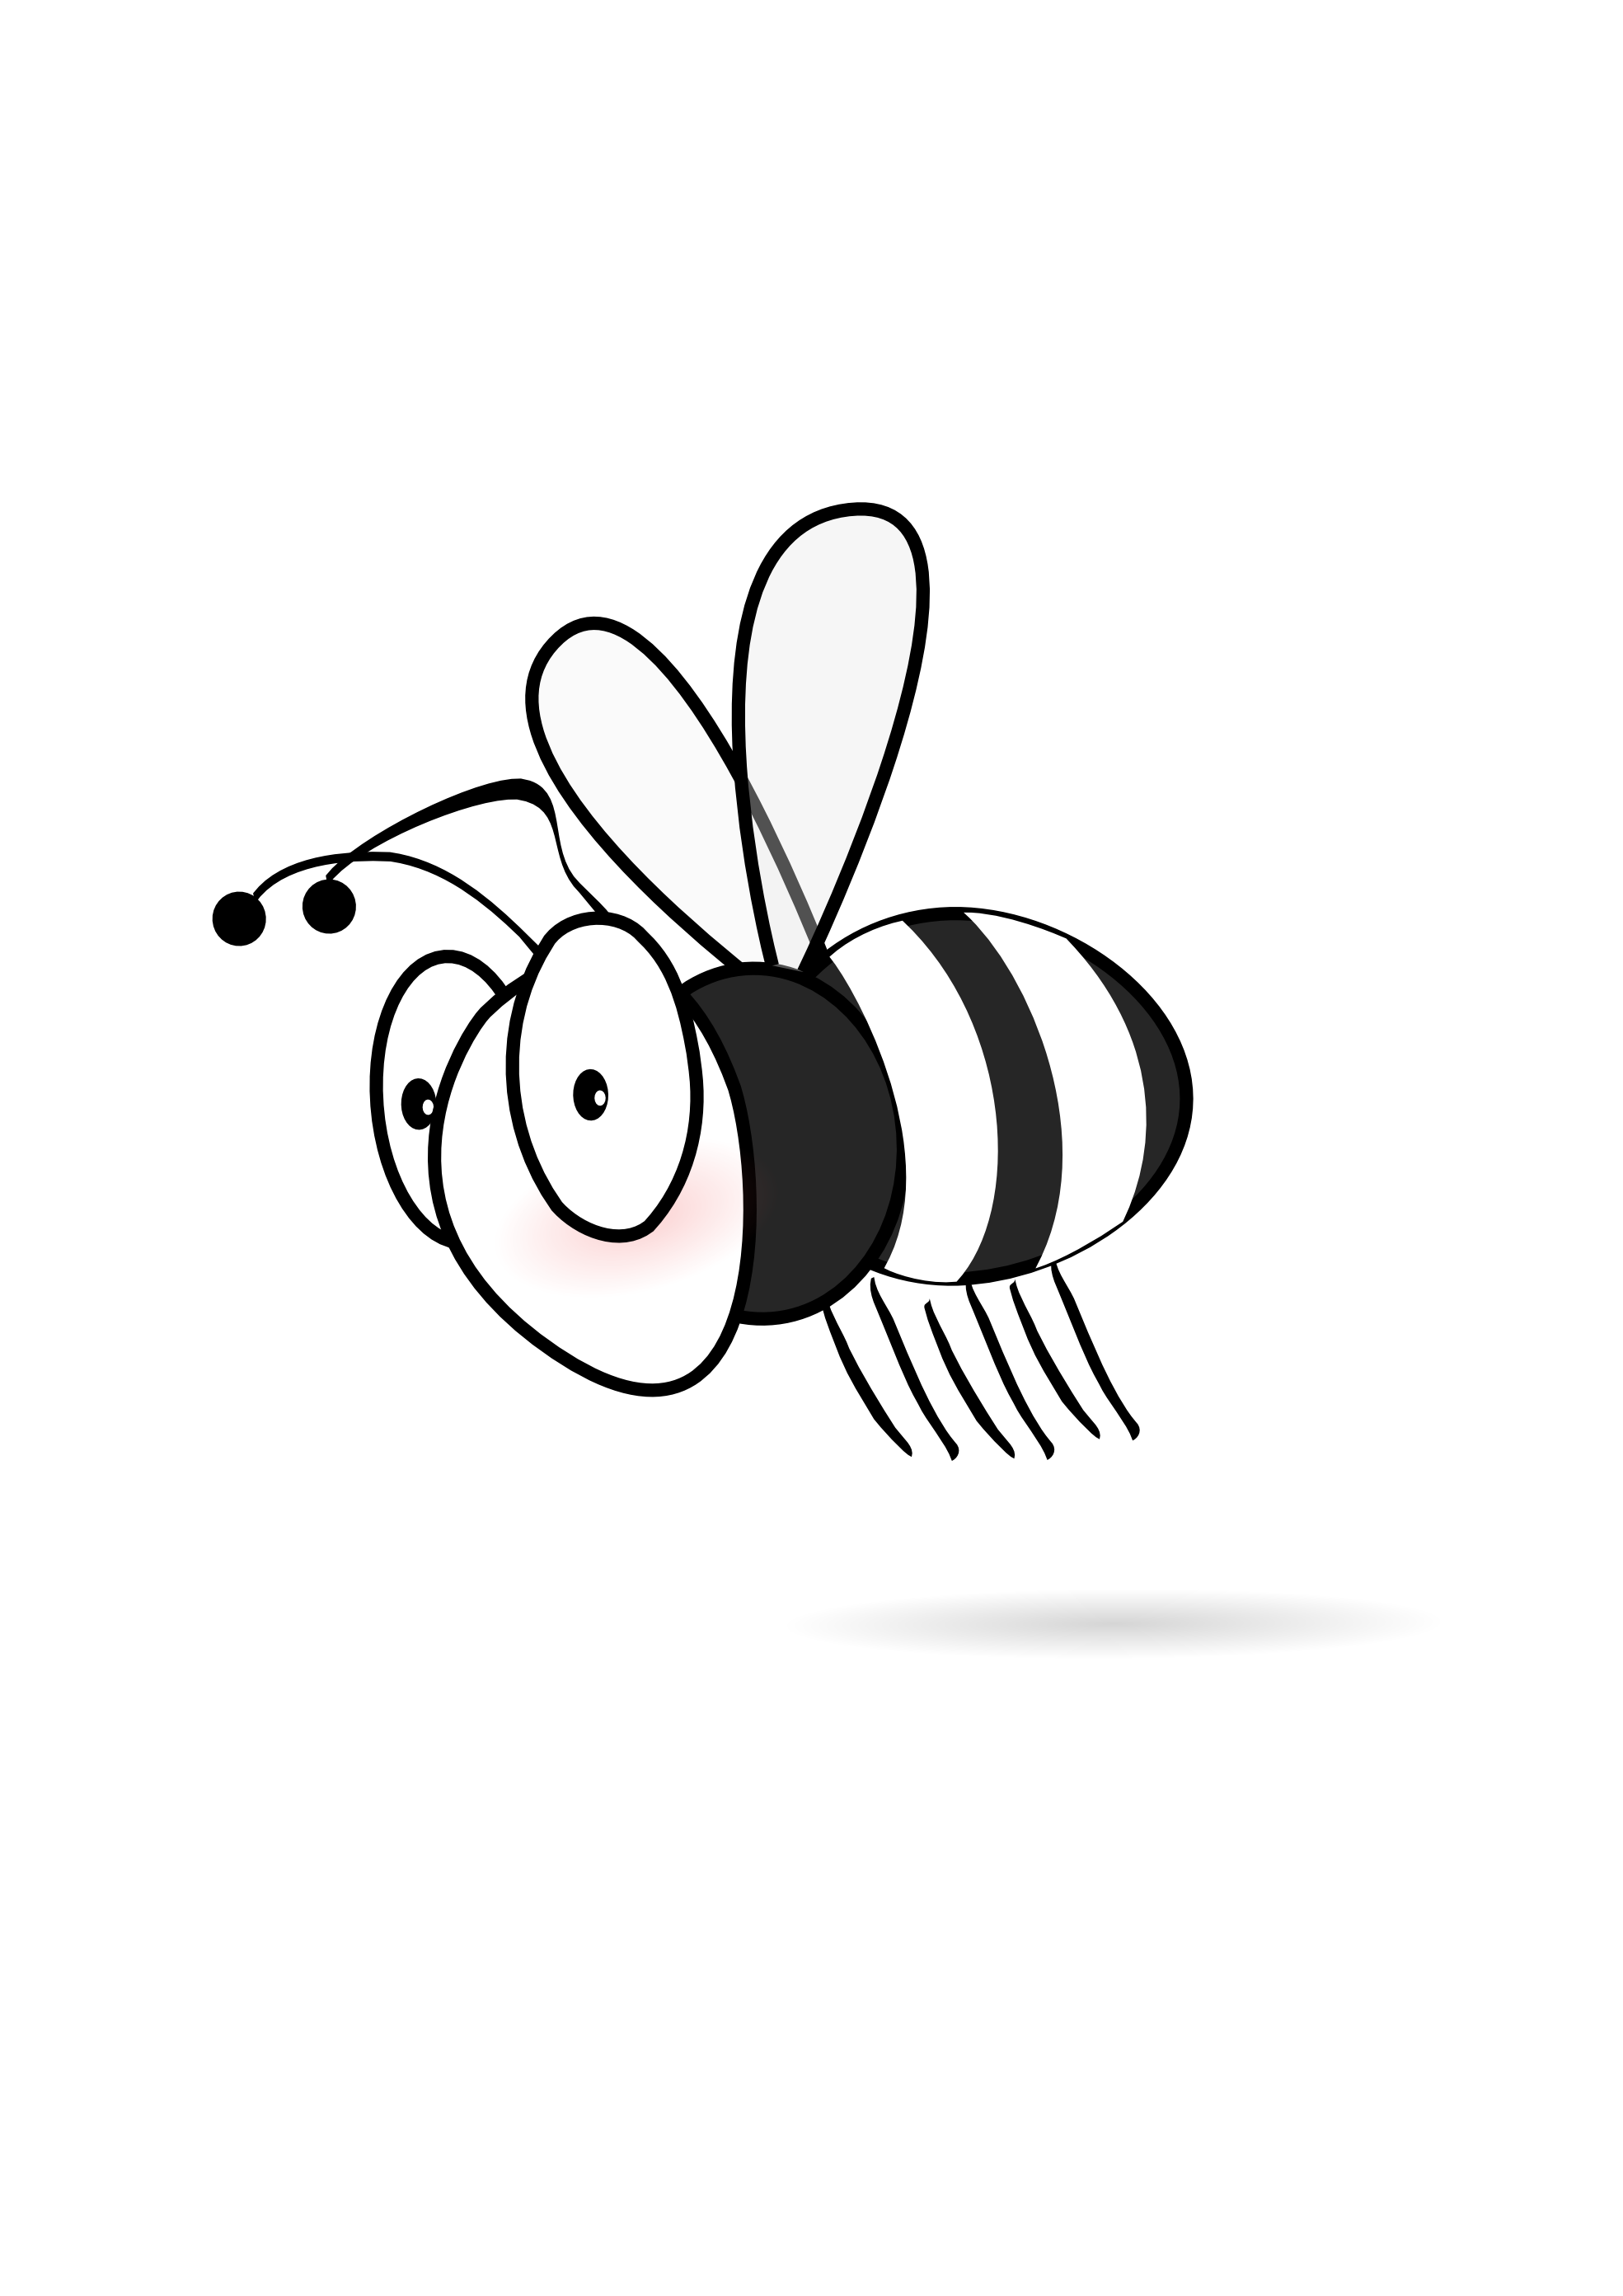 Bee clip art black and white. Skull clipart images gallery